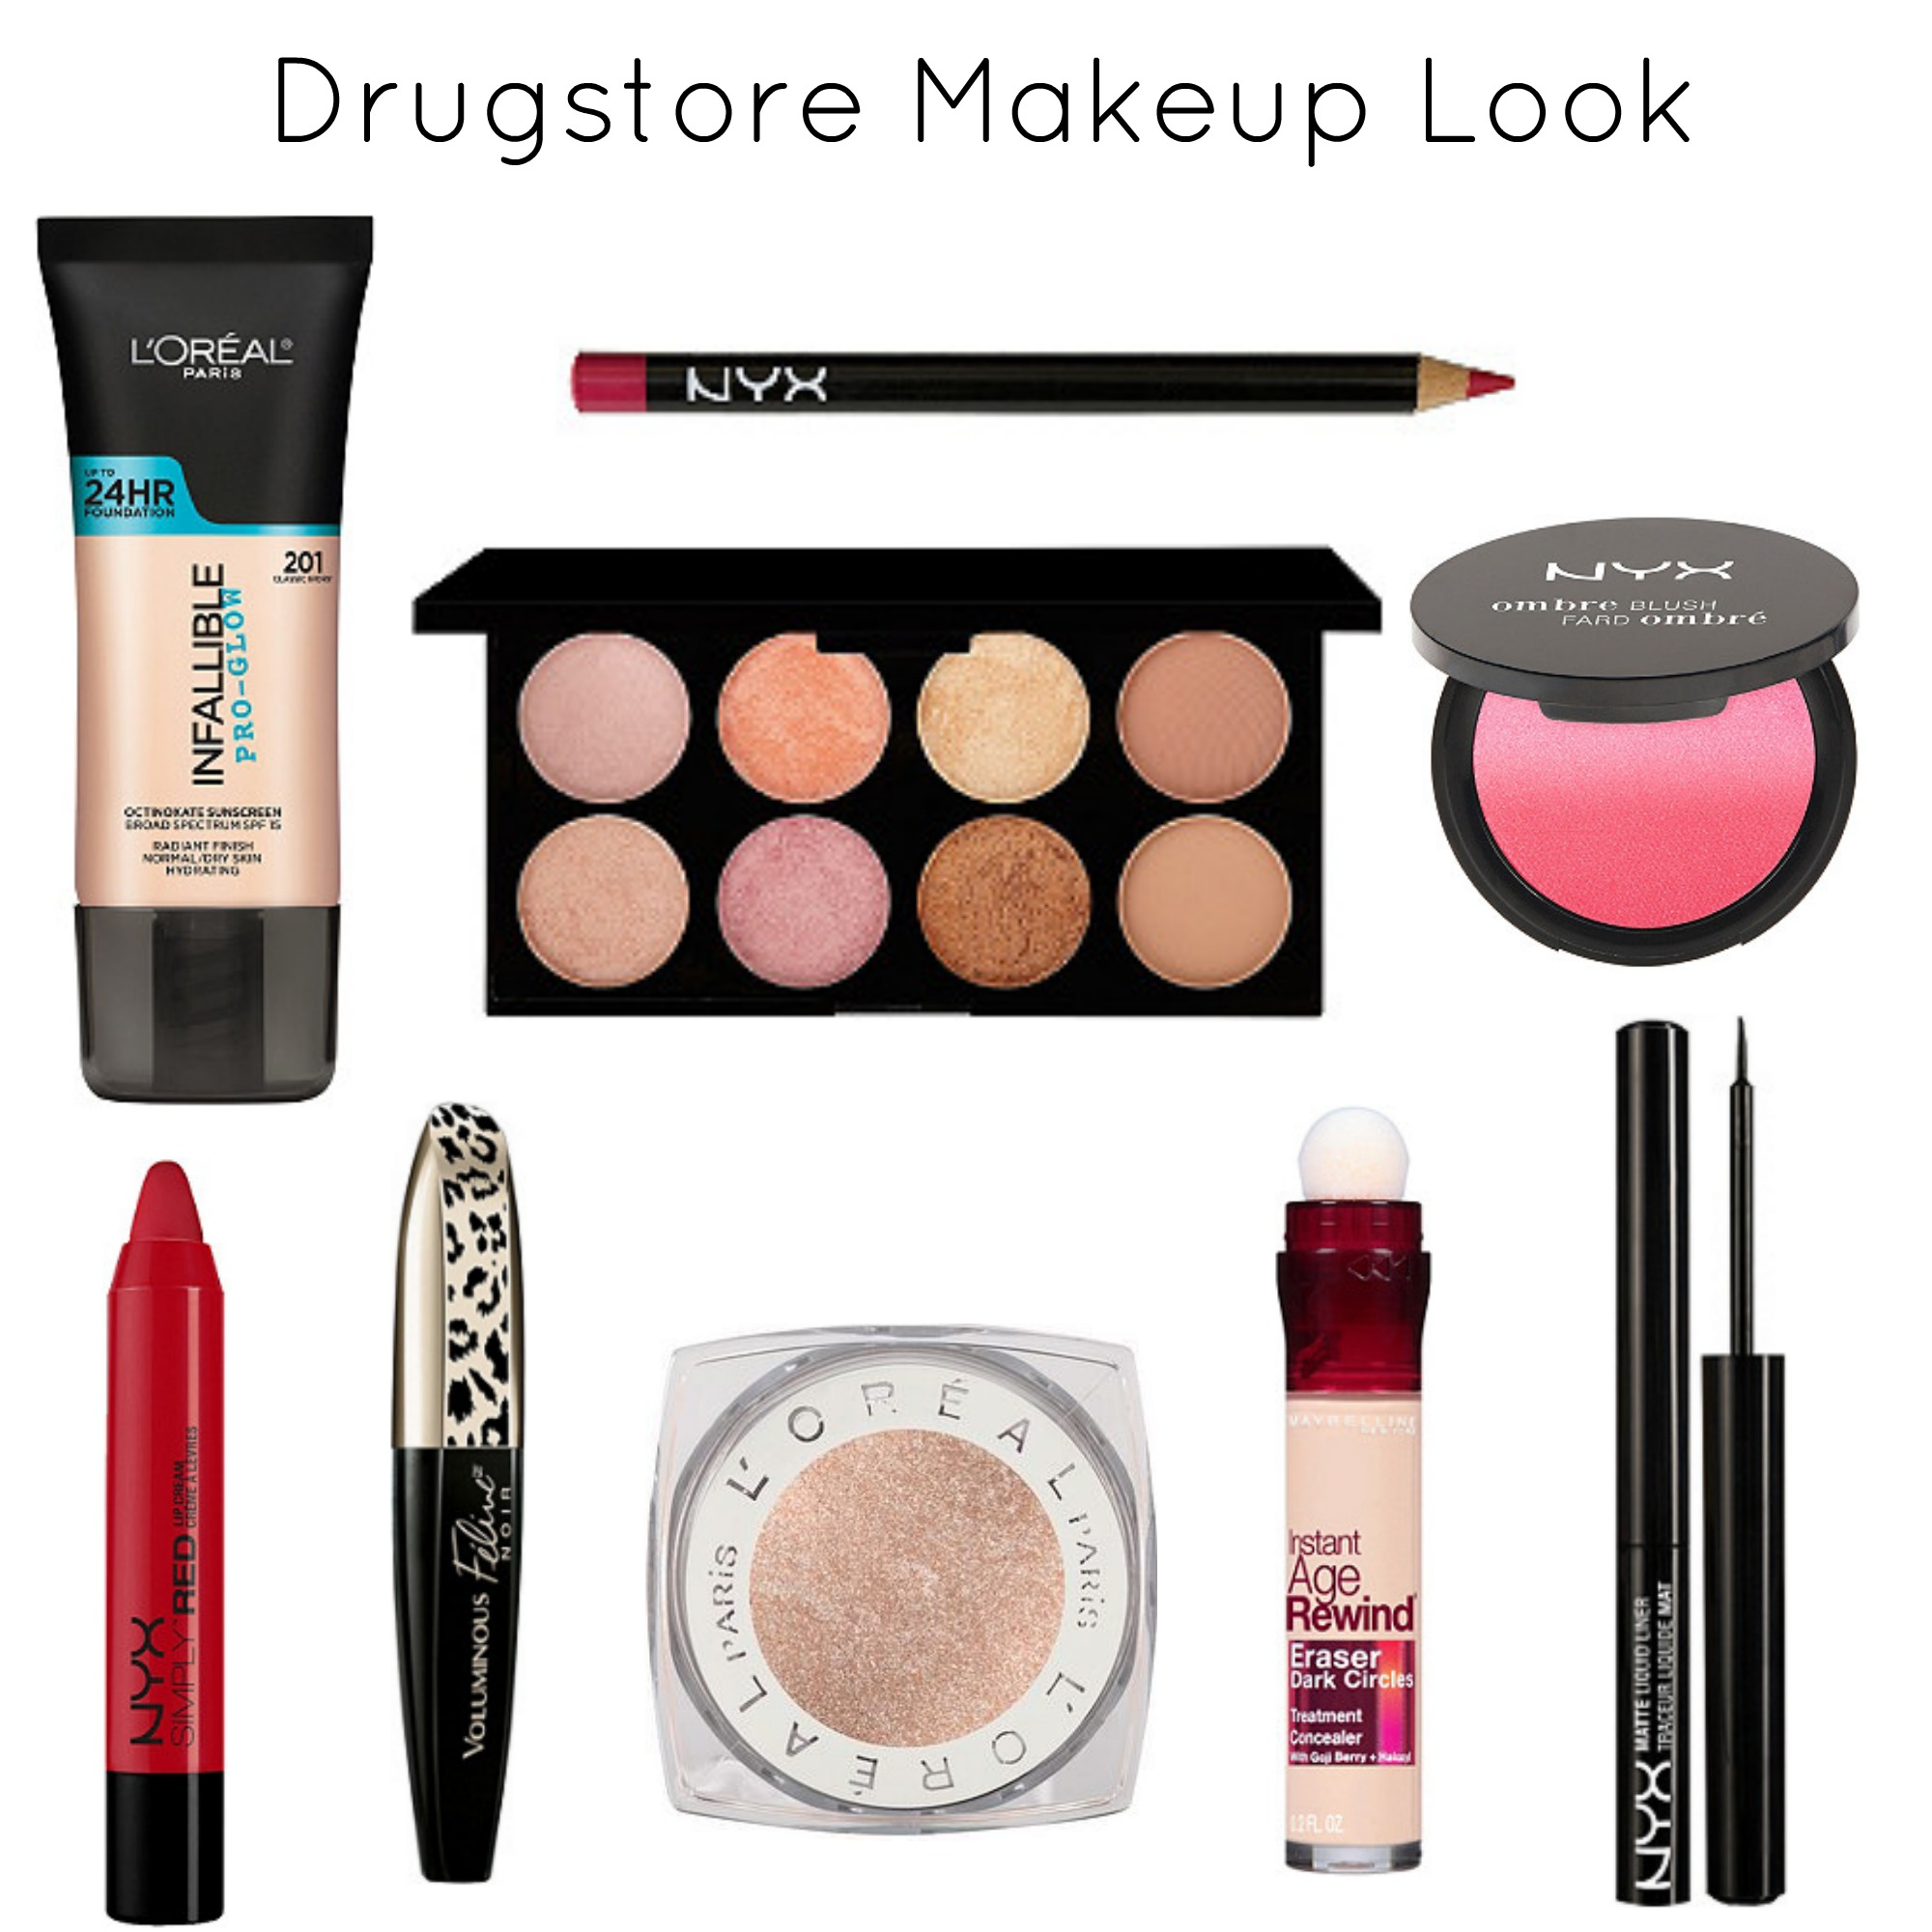 Drugstore Makeup Look